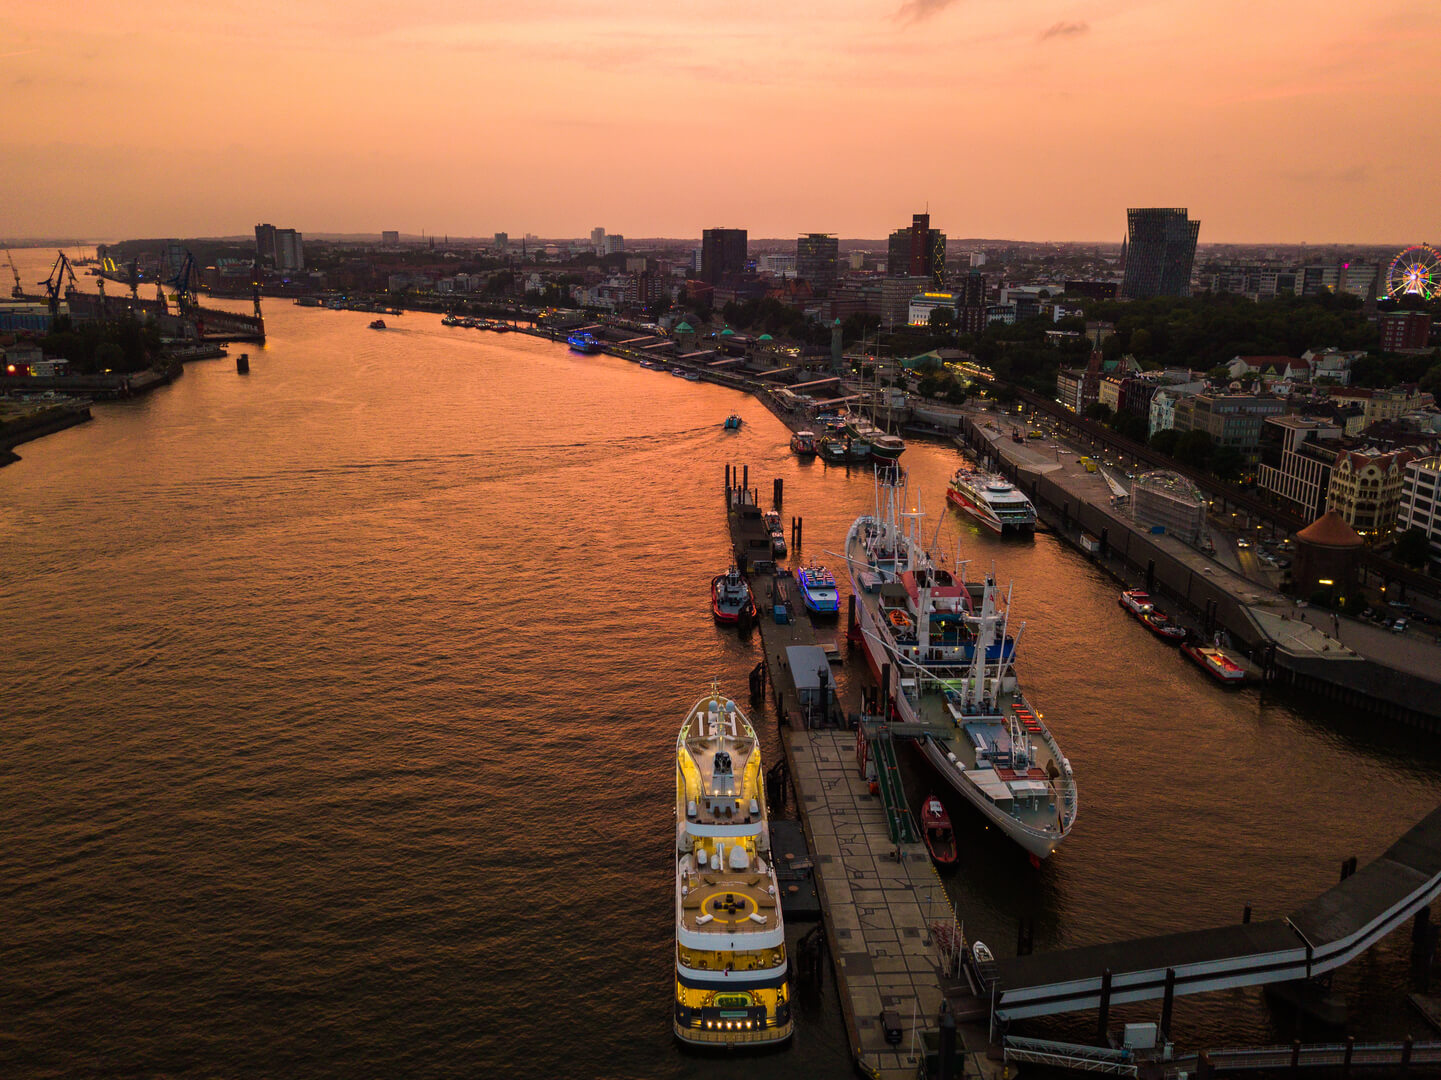 Aerial view of the Elbe River and ships in the city of Hamburg during sunset. Geramania in the summer